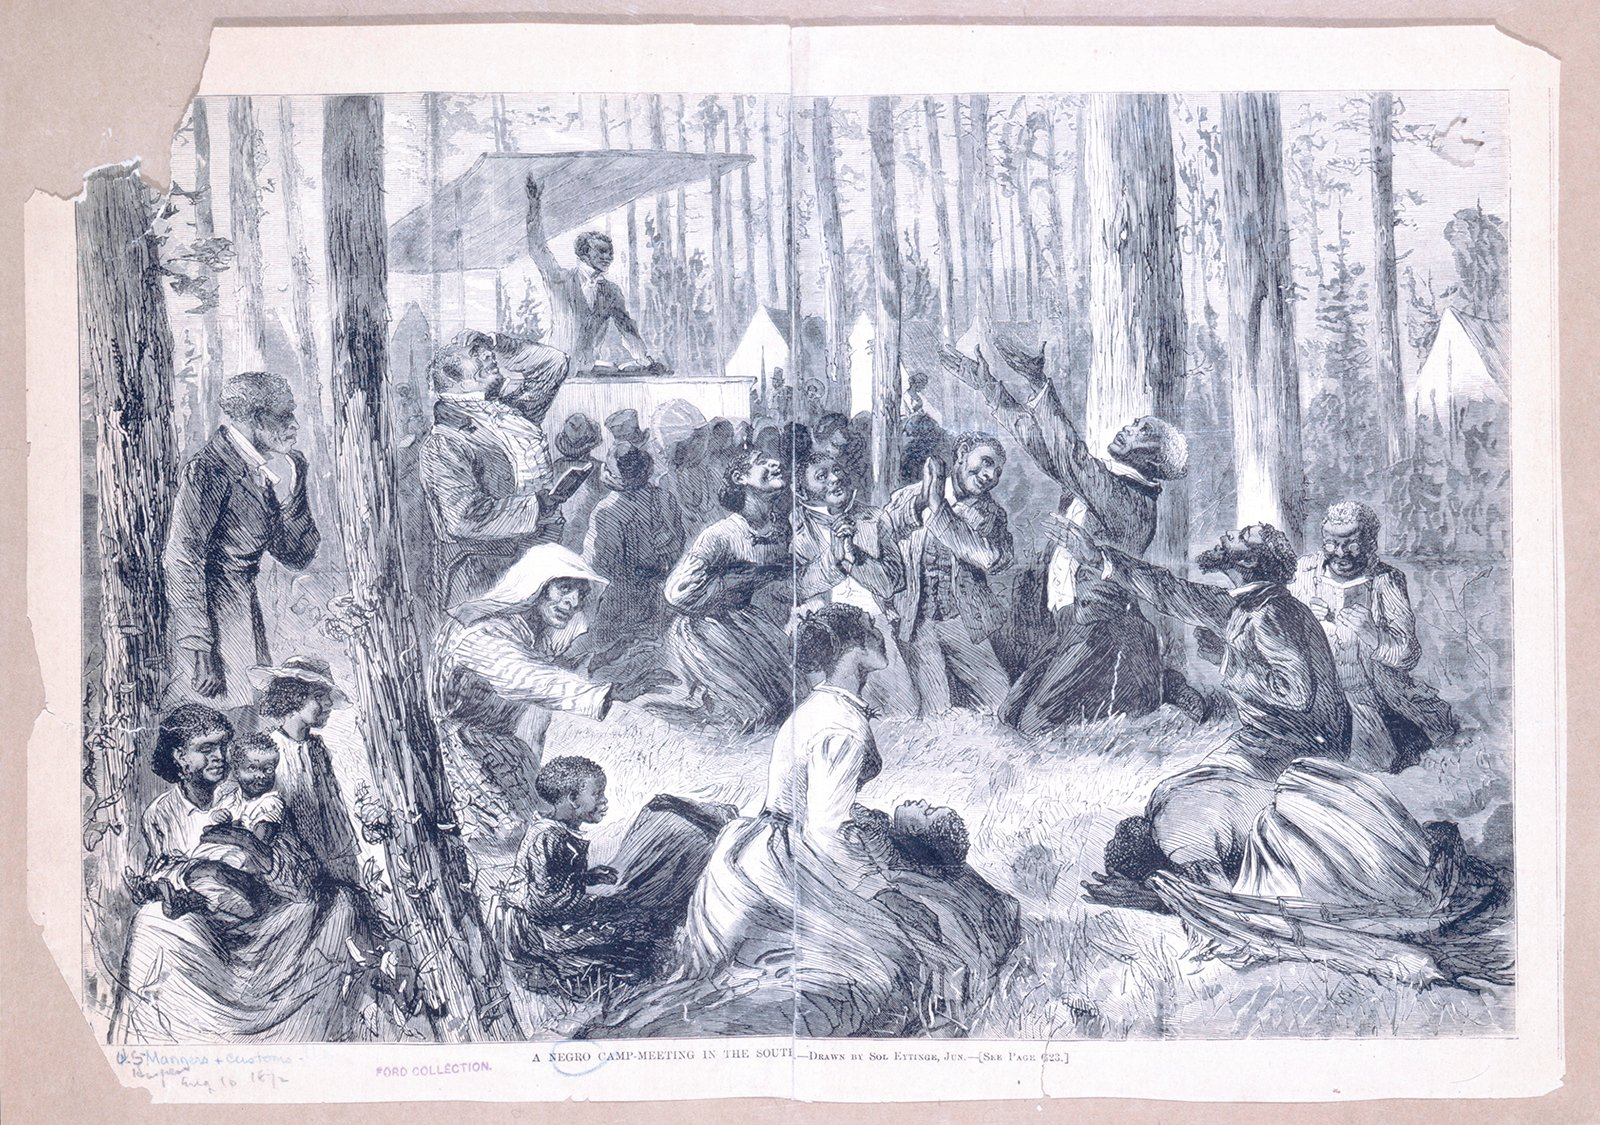 """""""A Negro camp meeting in the South."""" A man preaching with arm raised, top, to a group in the woods. Image courtesy of the Schomburg Center for Research in Black Culture, The New York Public Library"""